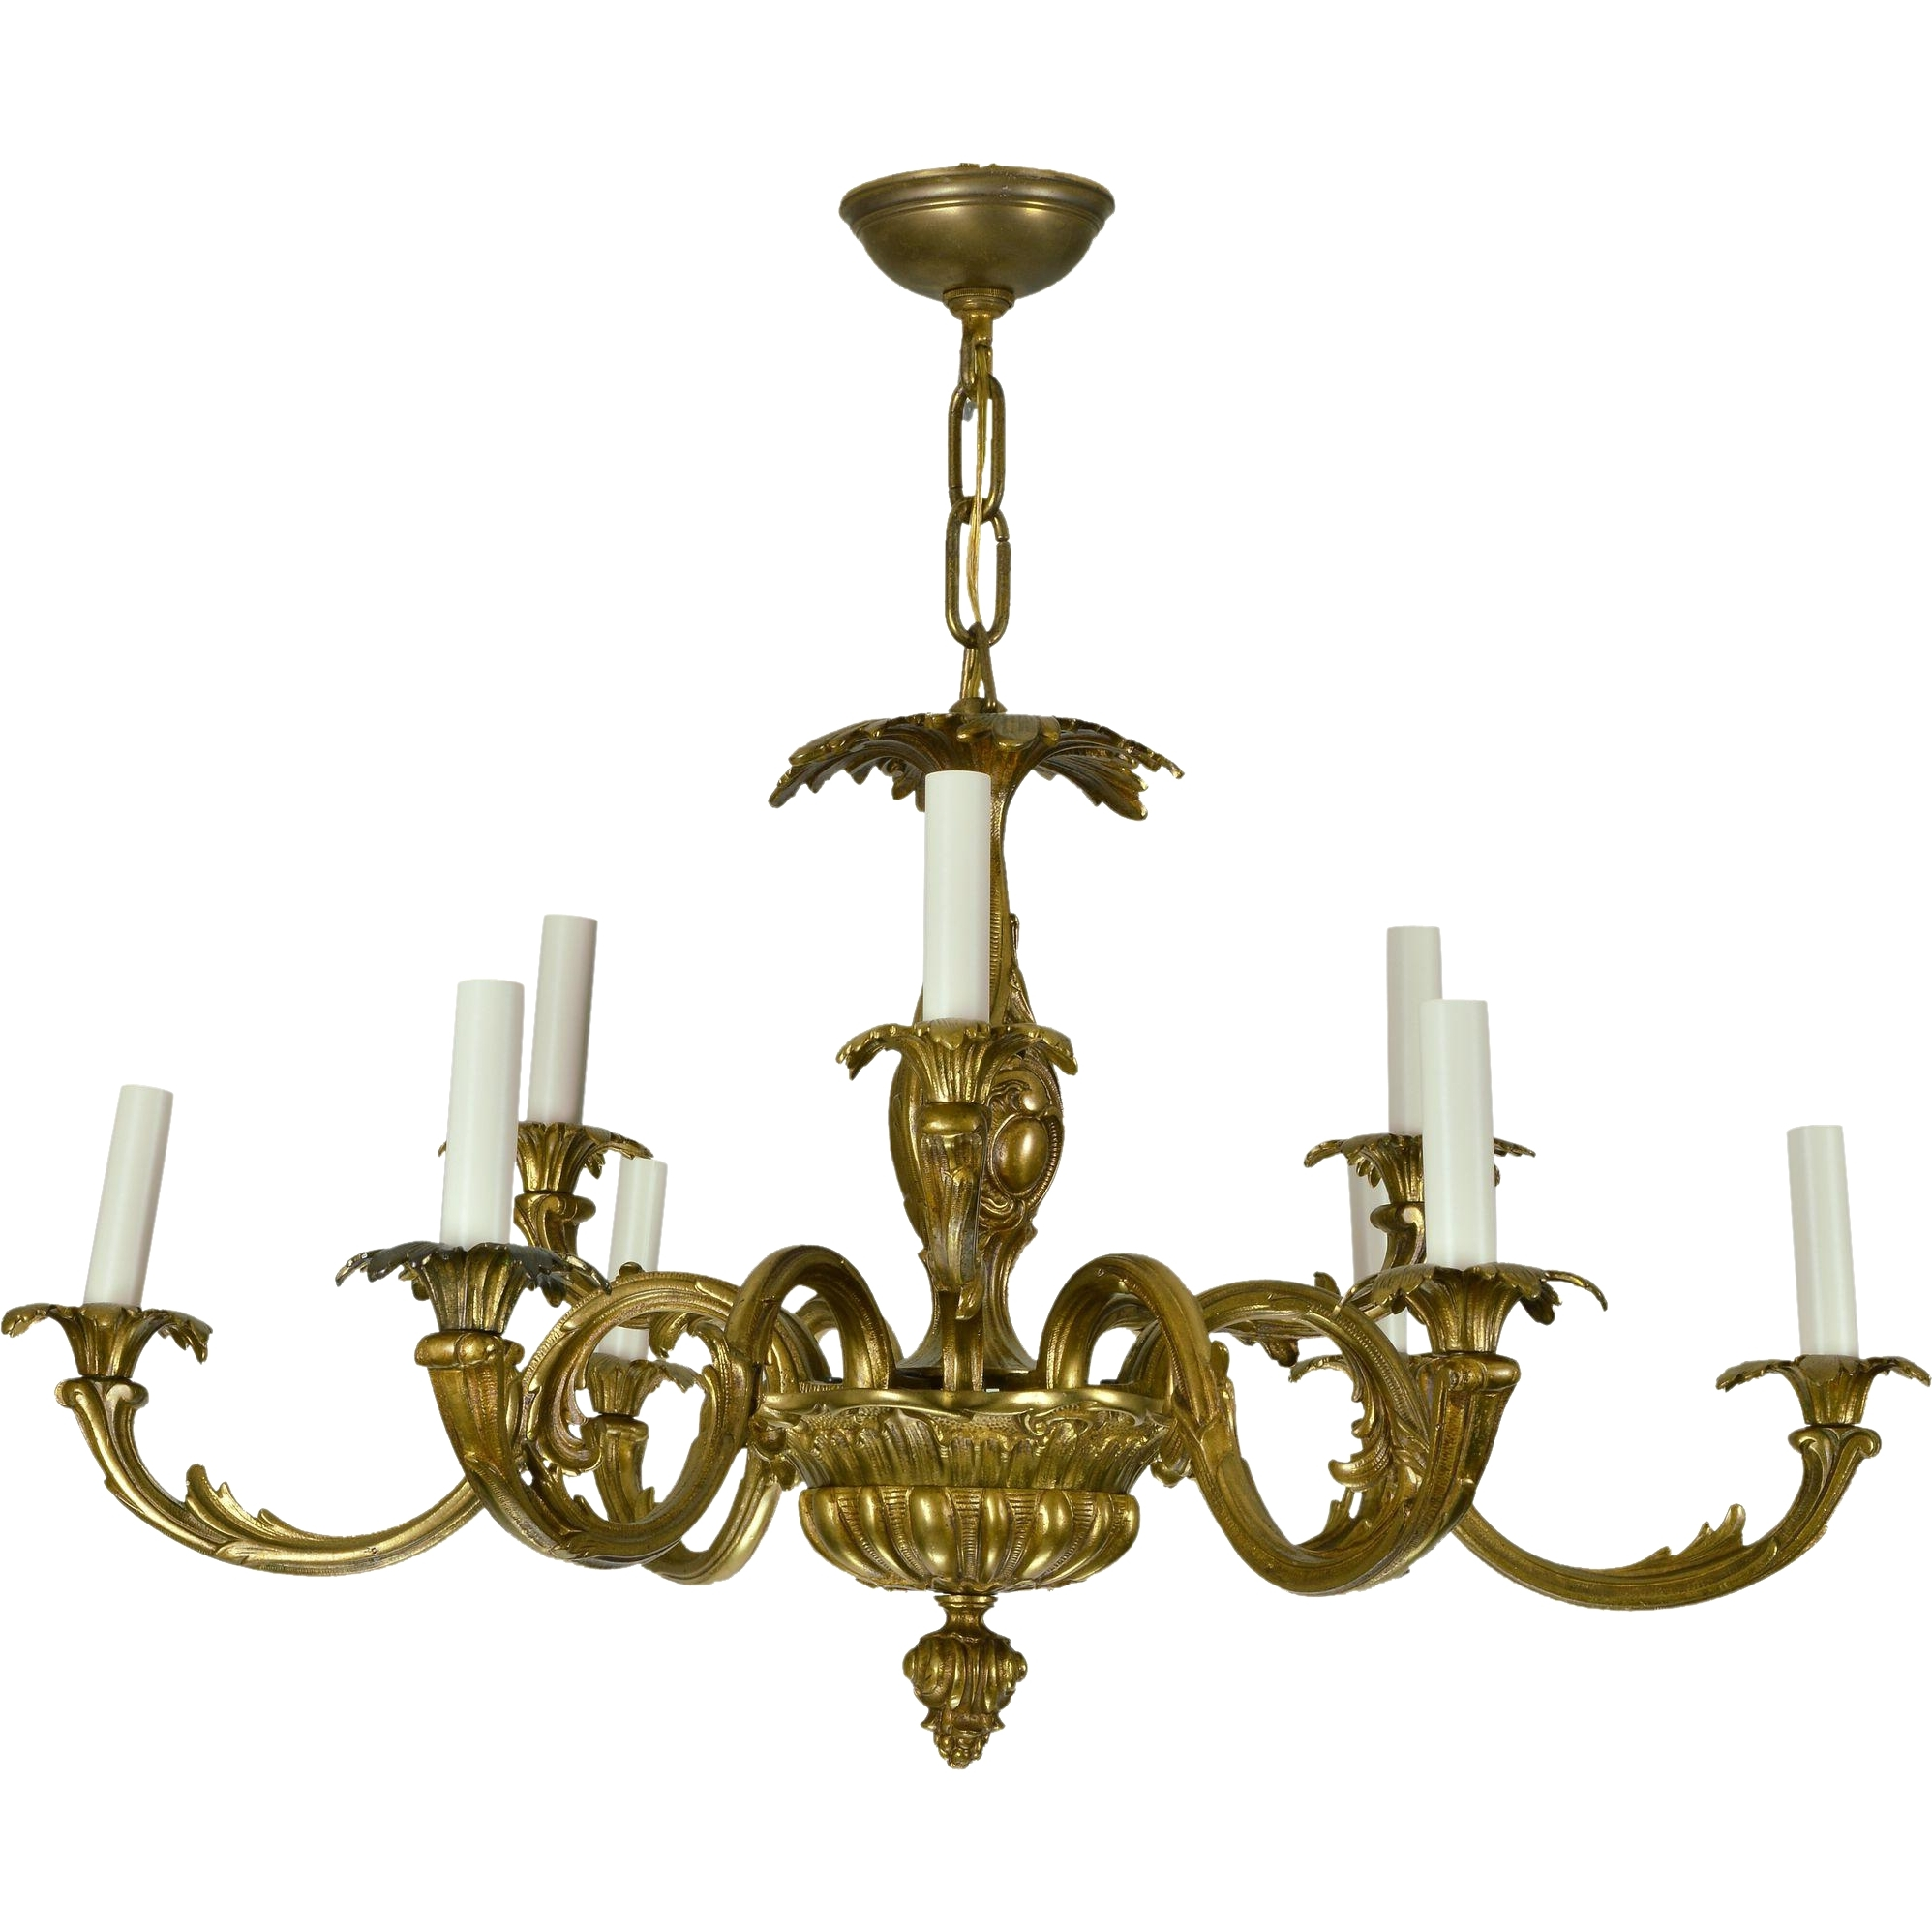 Old Brass Chandelier For Current Home Design : Graceful Antique Brass Chandeliers Vintage Chandelier (View 12 of 20)